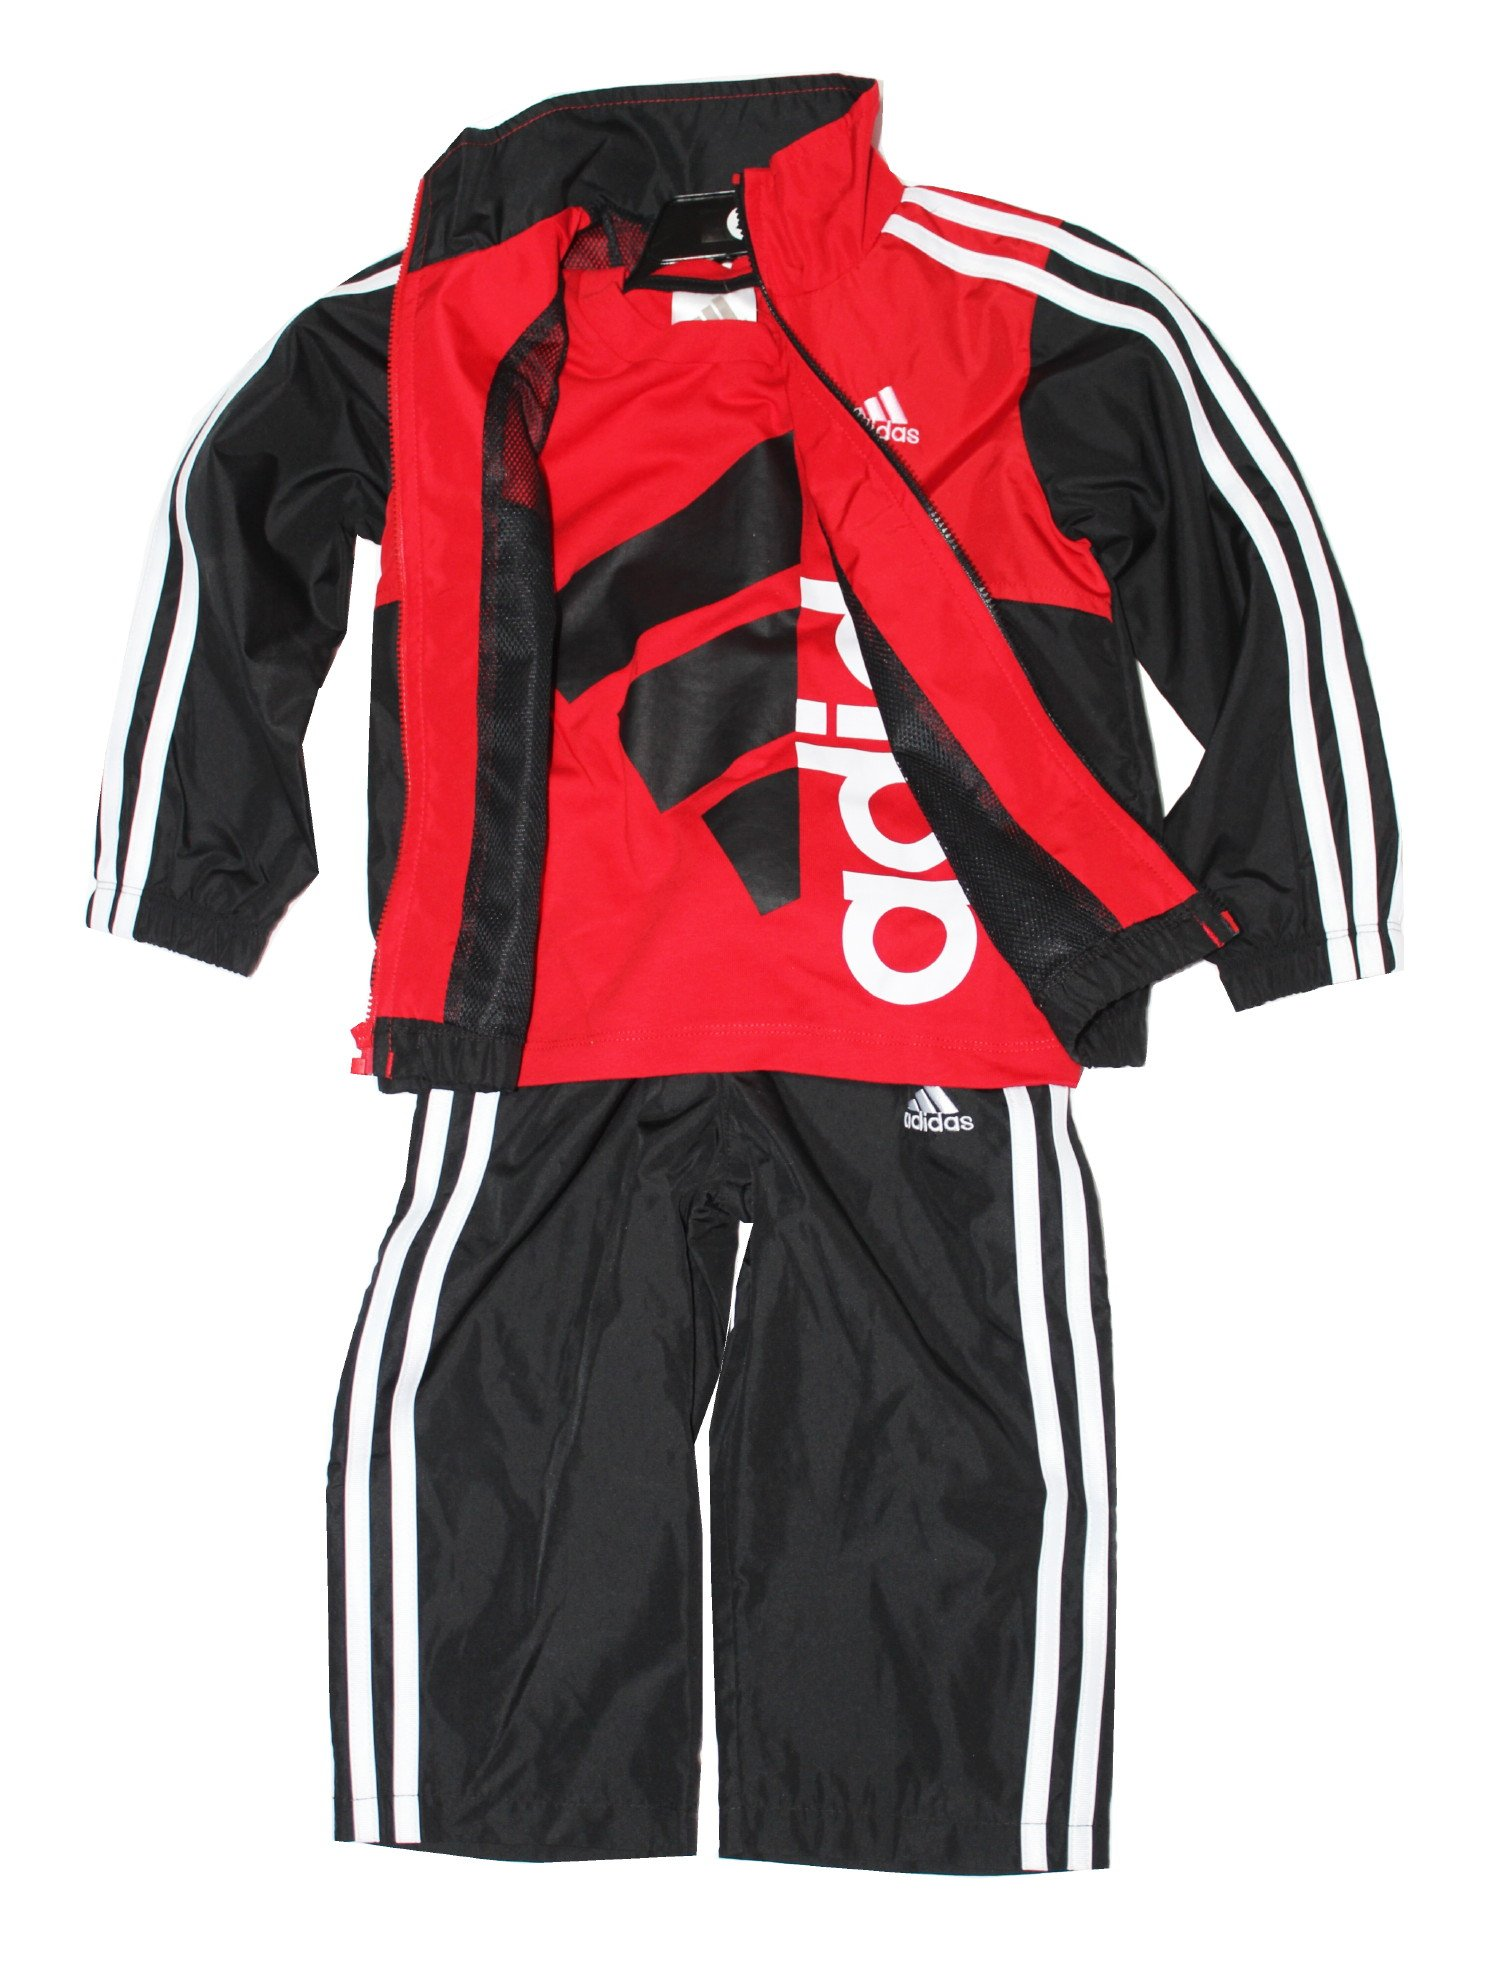 Adidas Boys 3-piece Athletic Windsuit, Bright Red, 6 by adidas